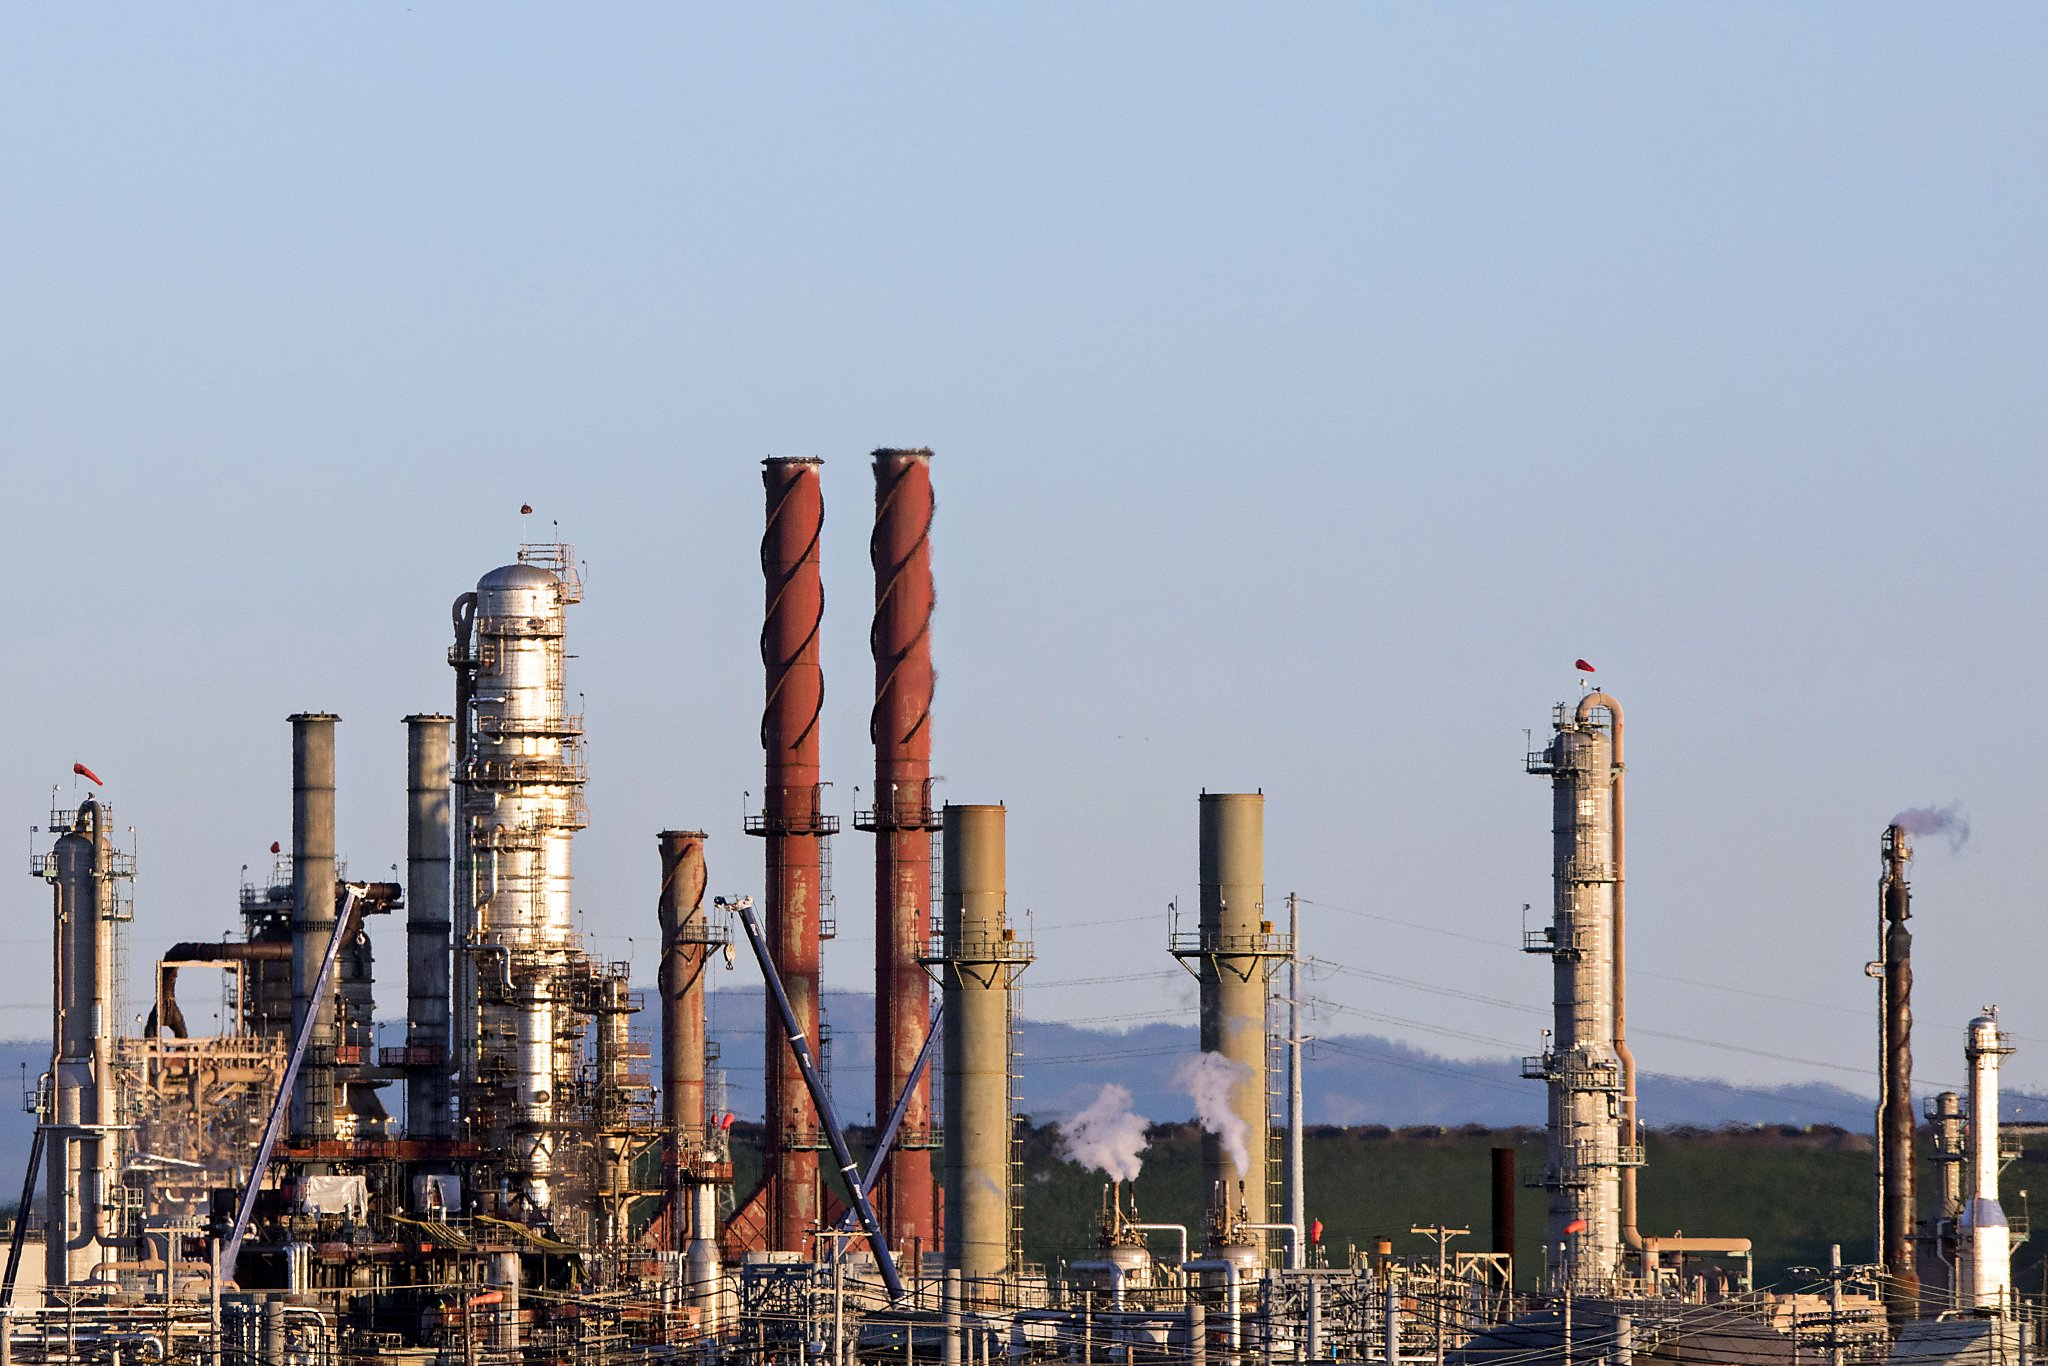 Chevron's Richmond facility experiences flaring